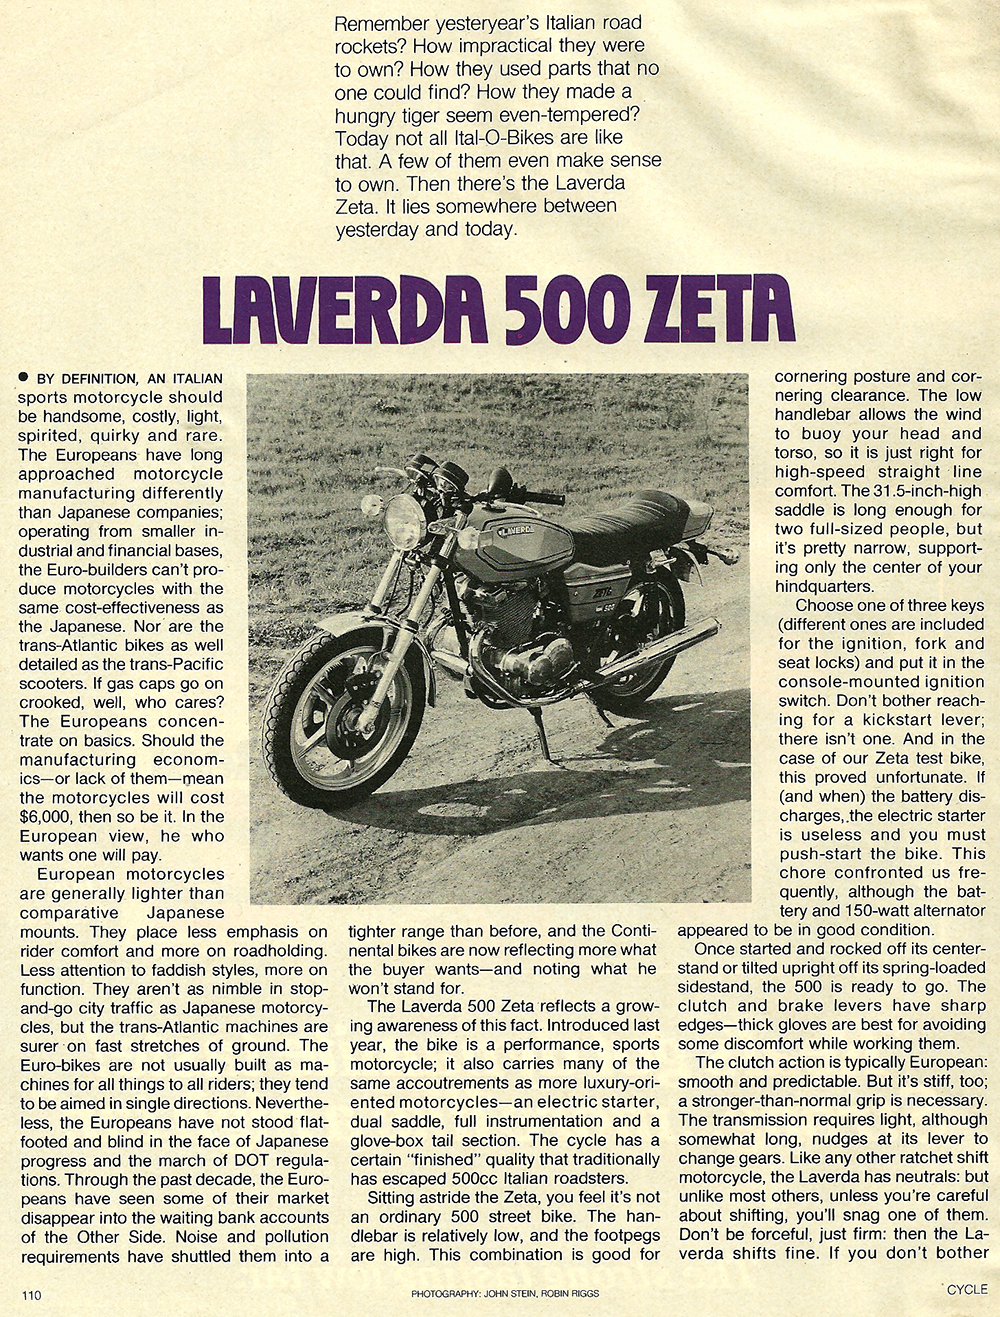 1979 Laverda 500 Zeta road test 1.jpg